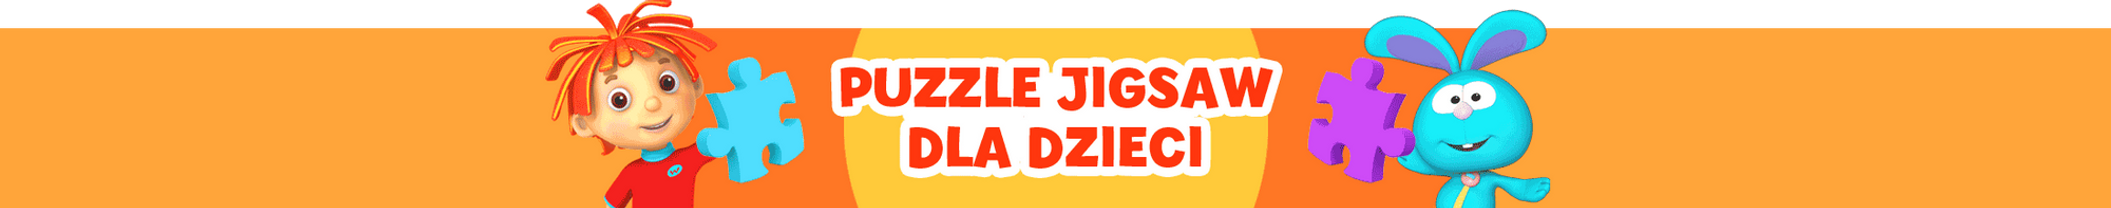 Polish - Jigsaw---Sub-Section-Banner.png